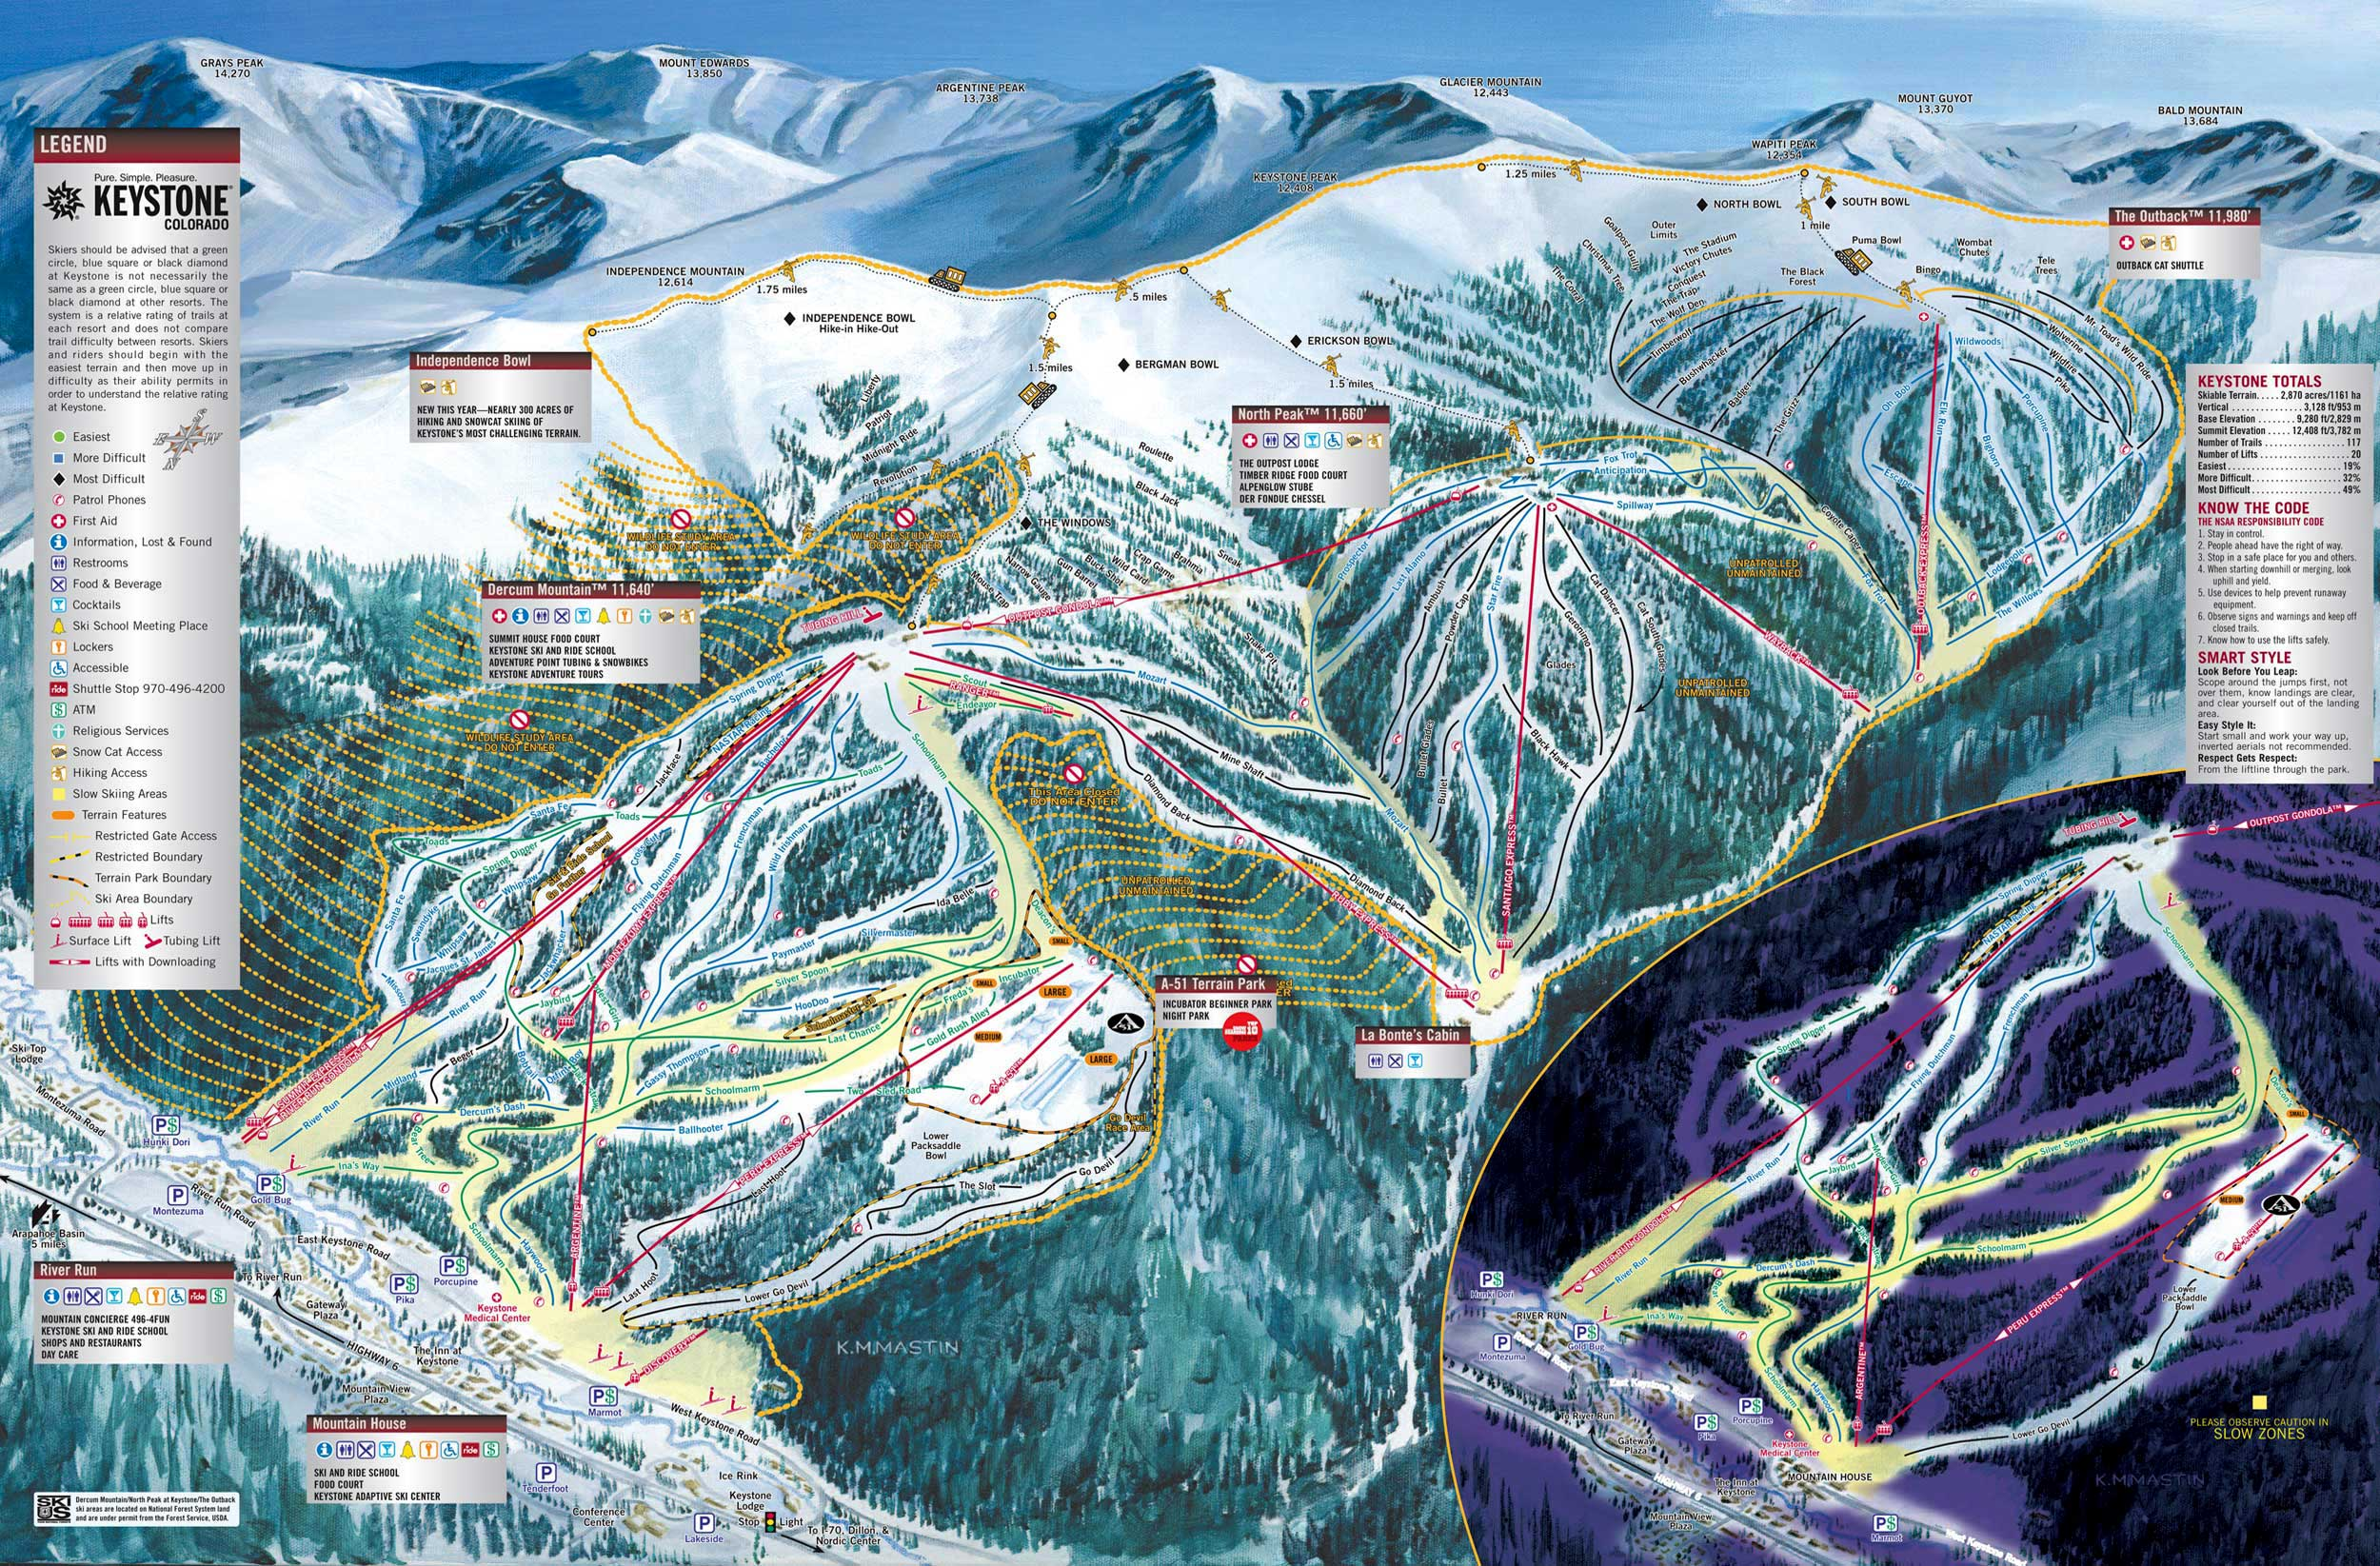 Keystone Ski Resort Colorado Ski And Snowboard Areas